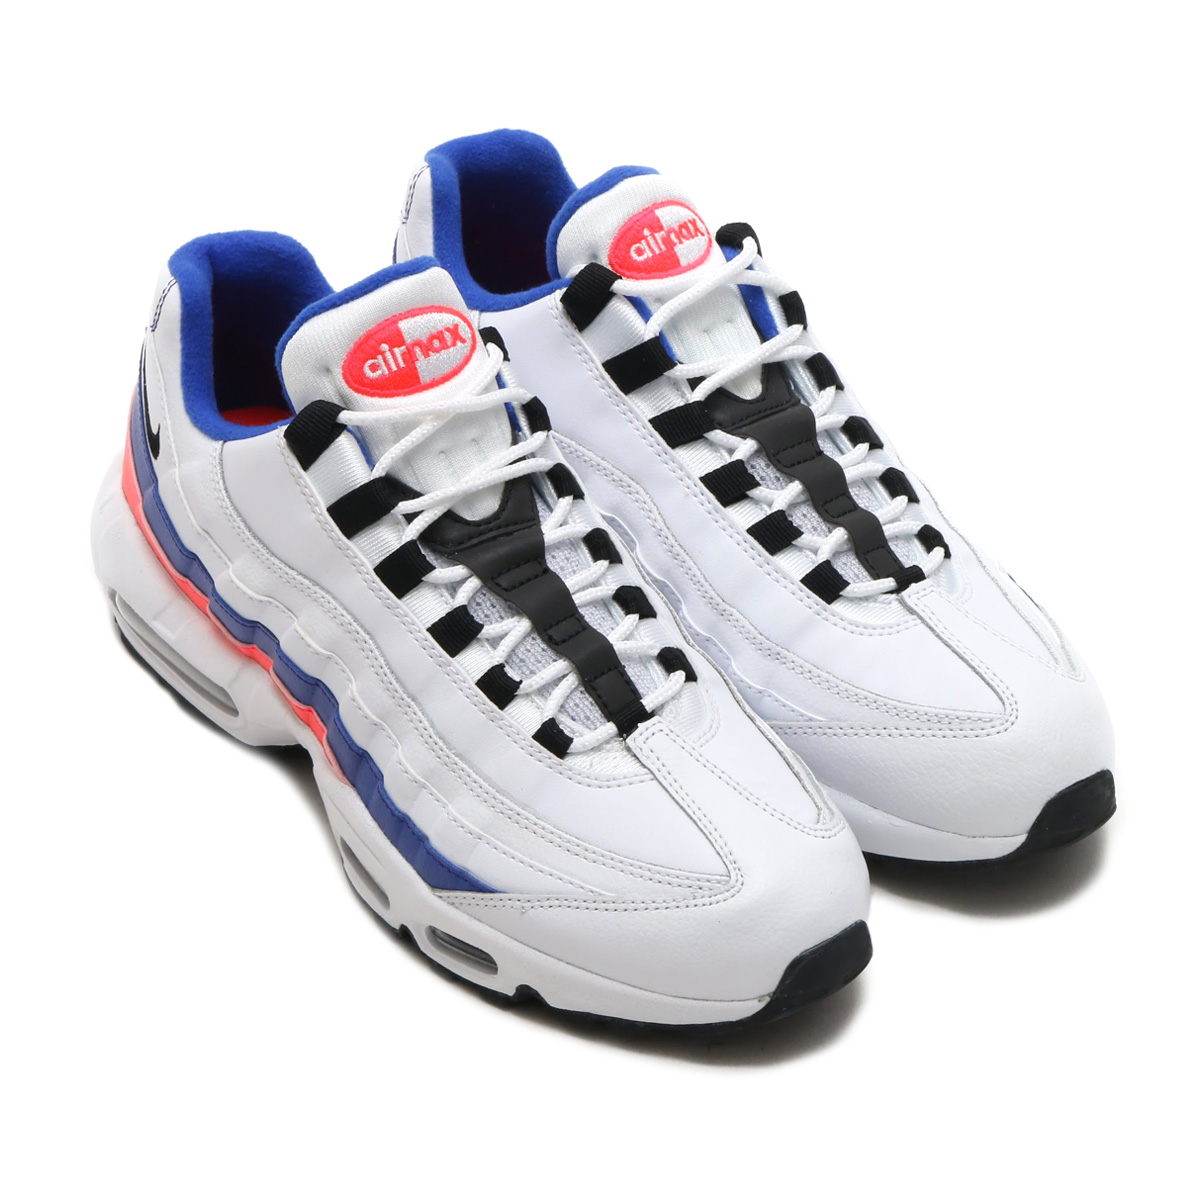 lower price with 28e37 49dfa ... maximum point 10 times that is targeted for all articles! NIKE AIR MAX  95 ...